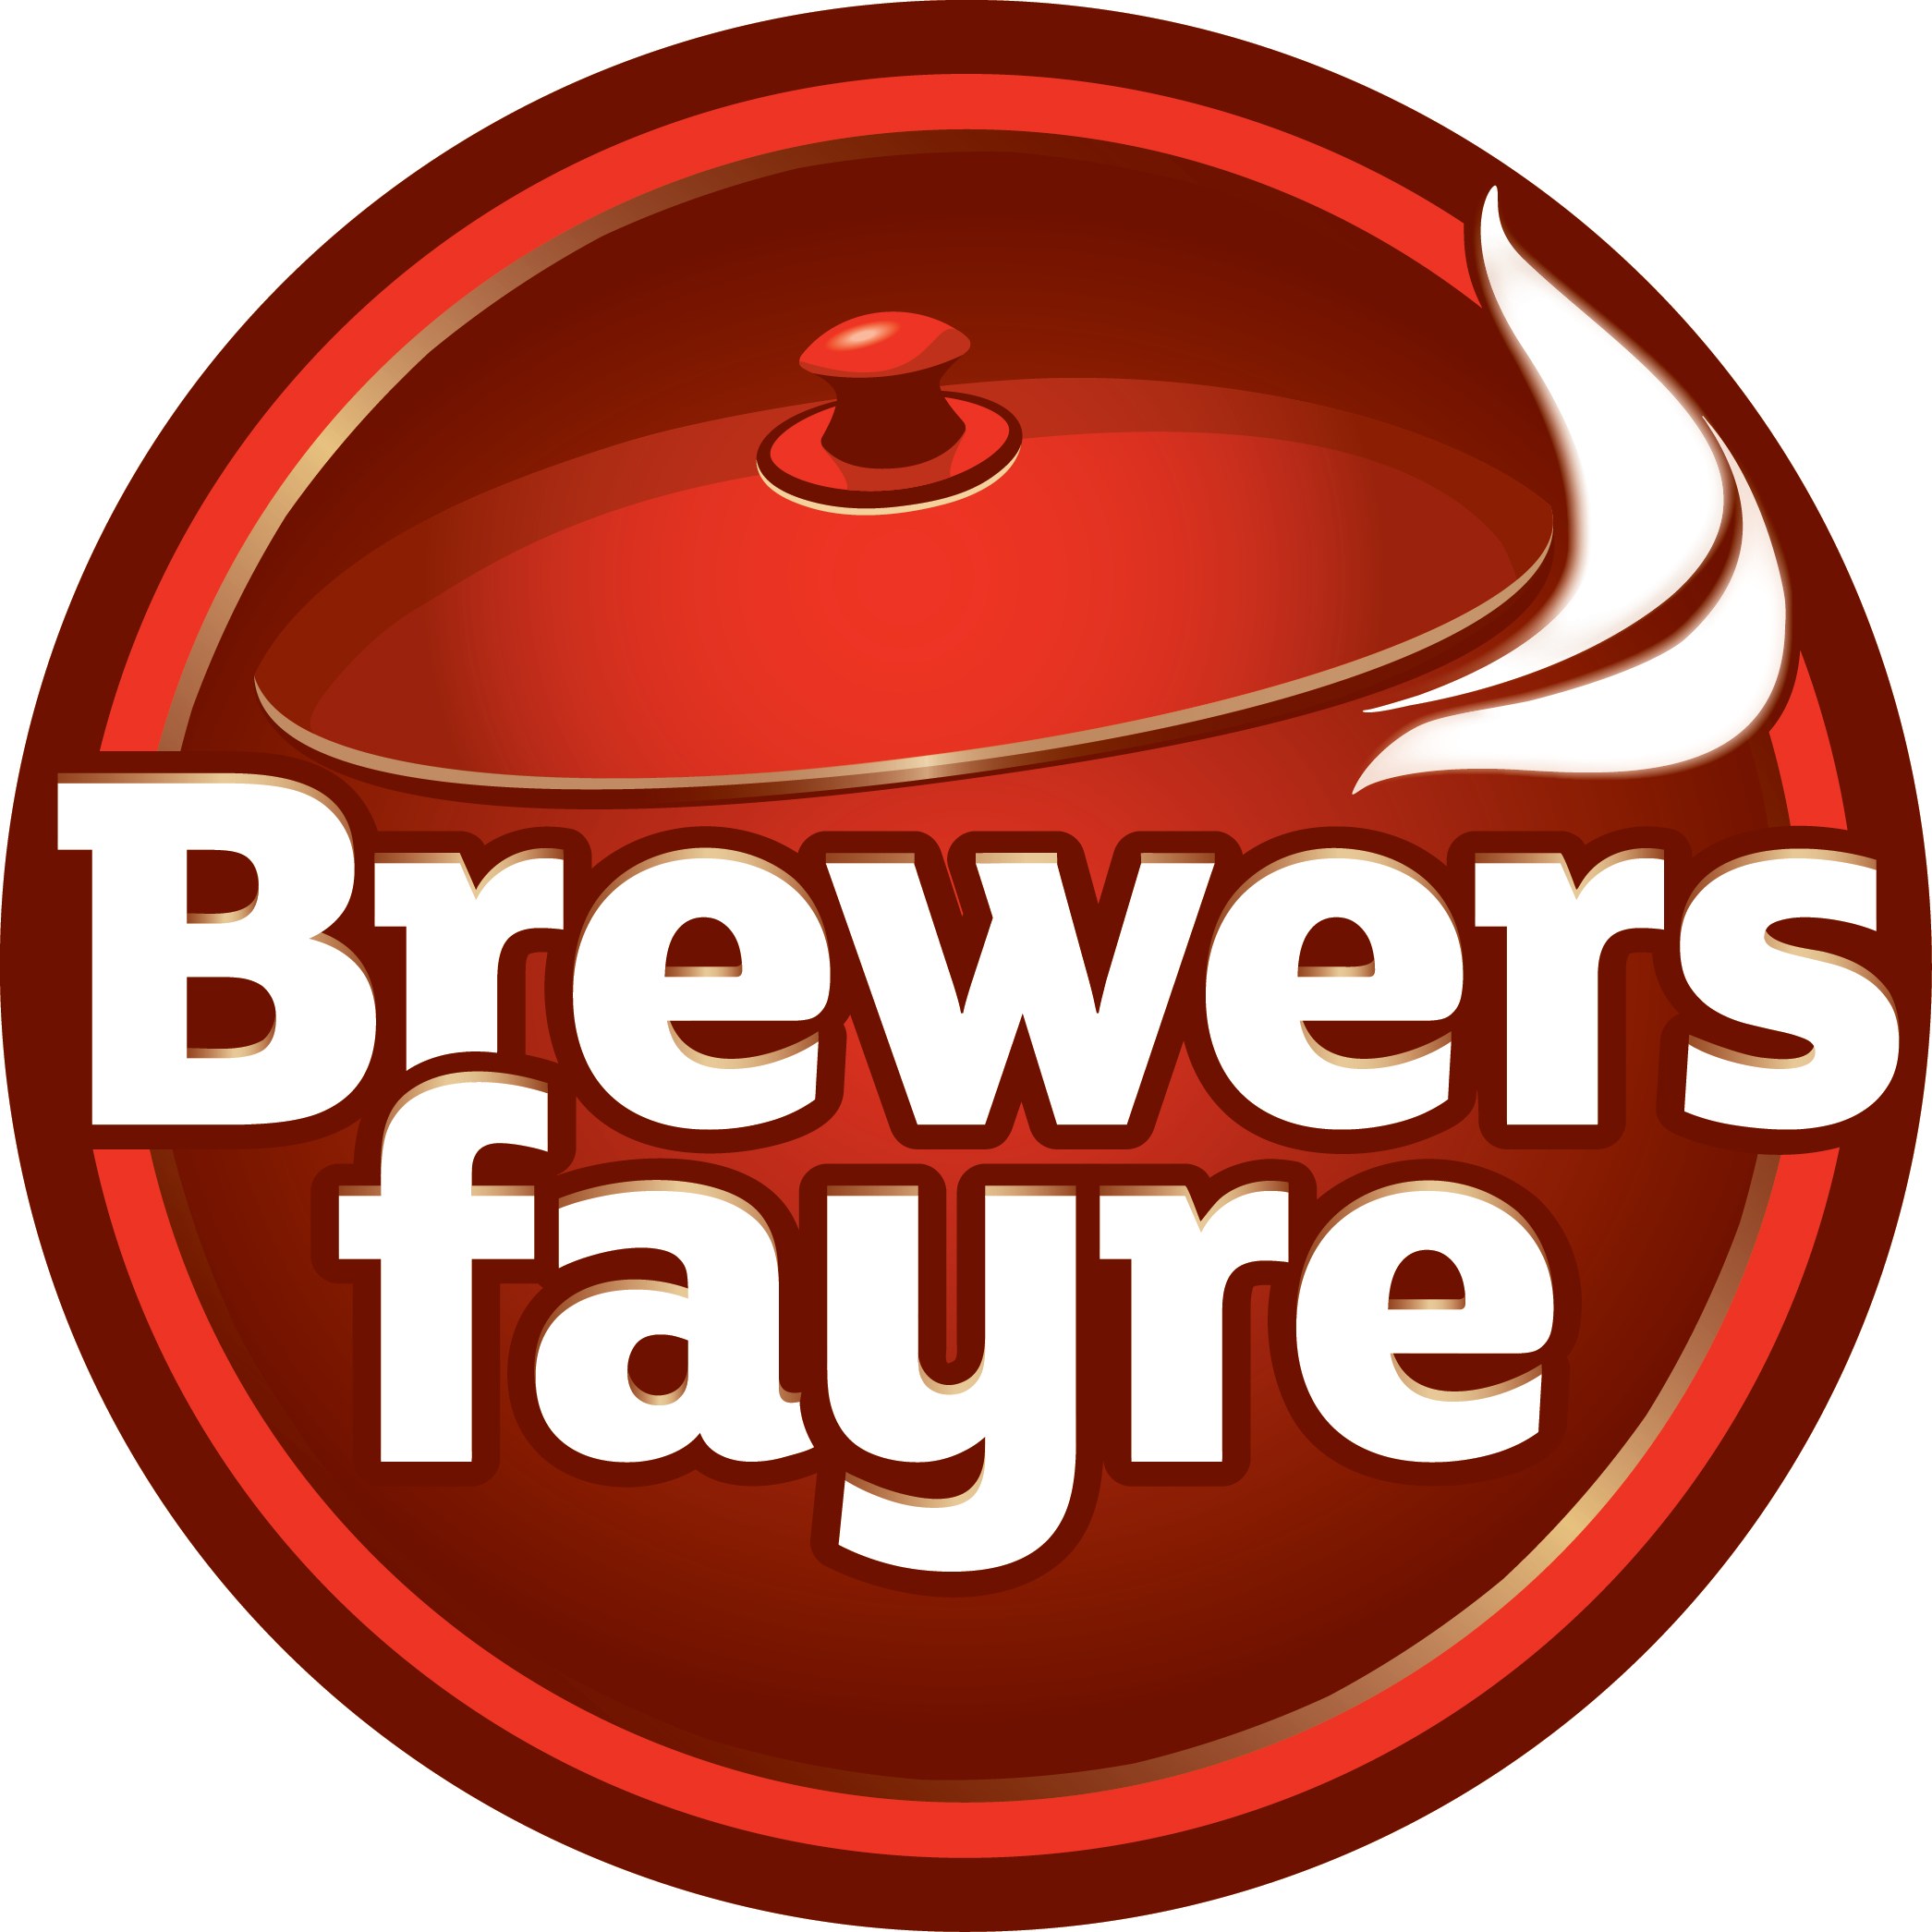 Brewers Fayre Mersey Farm - Sale, Lancashire M33 5BL - 01619 628113 | ShowMeLocal.com